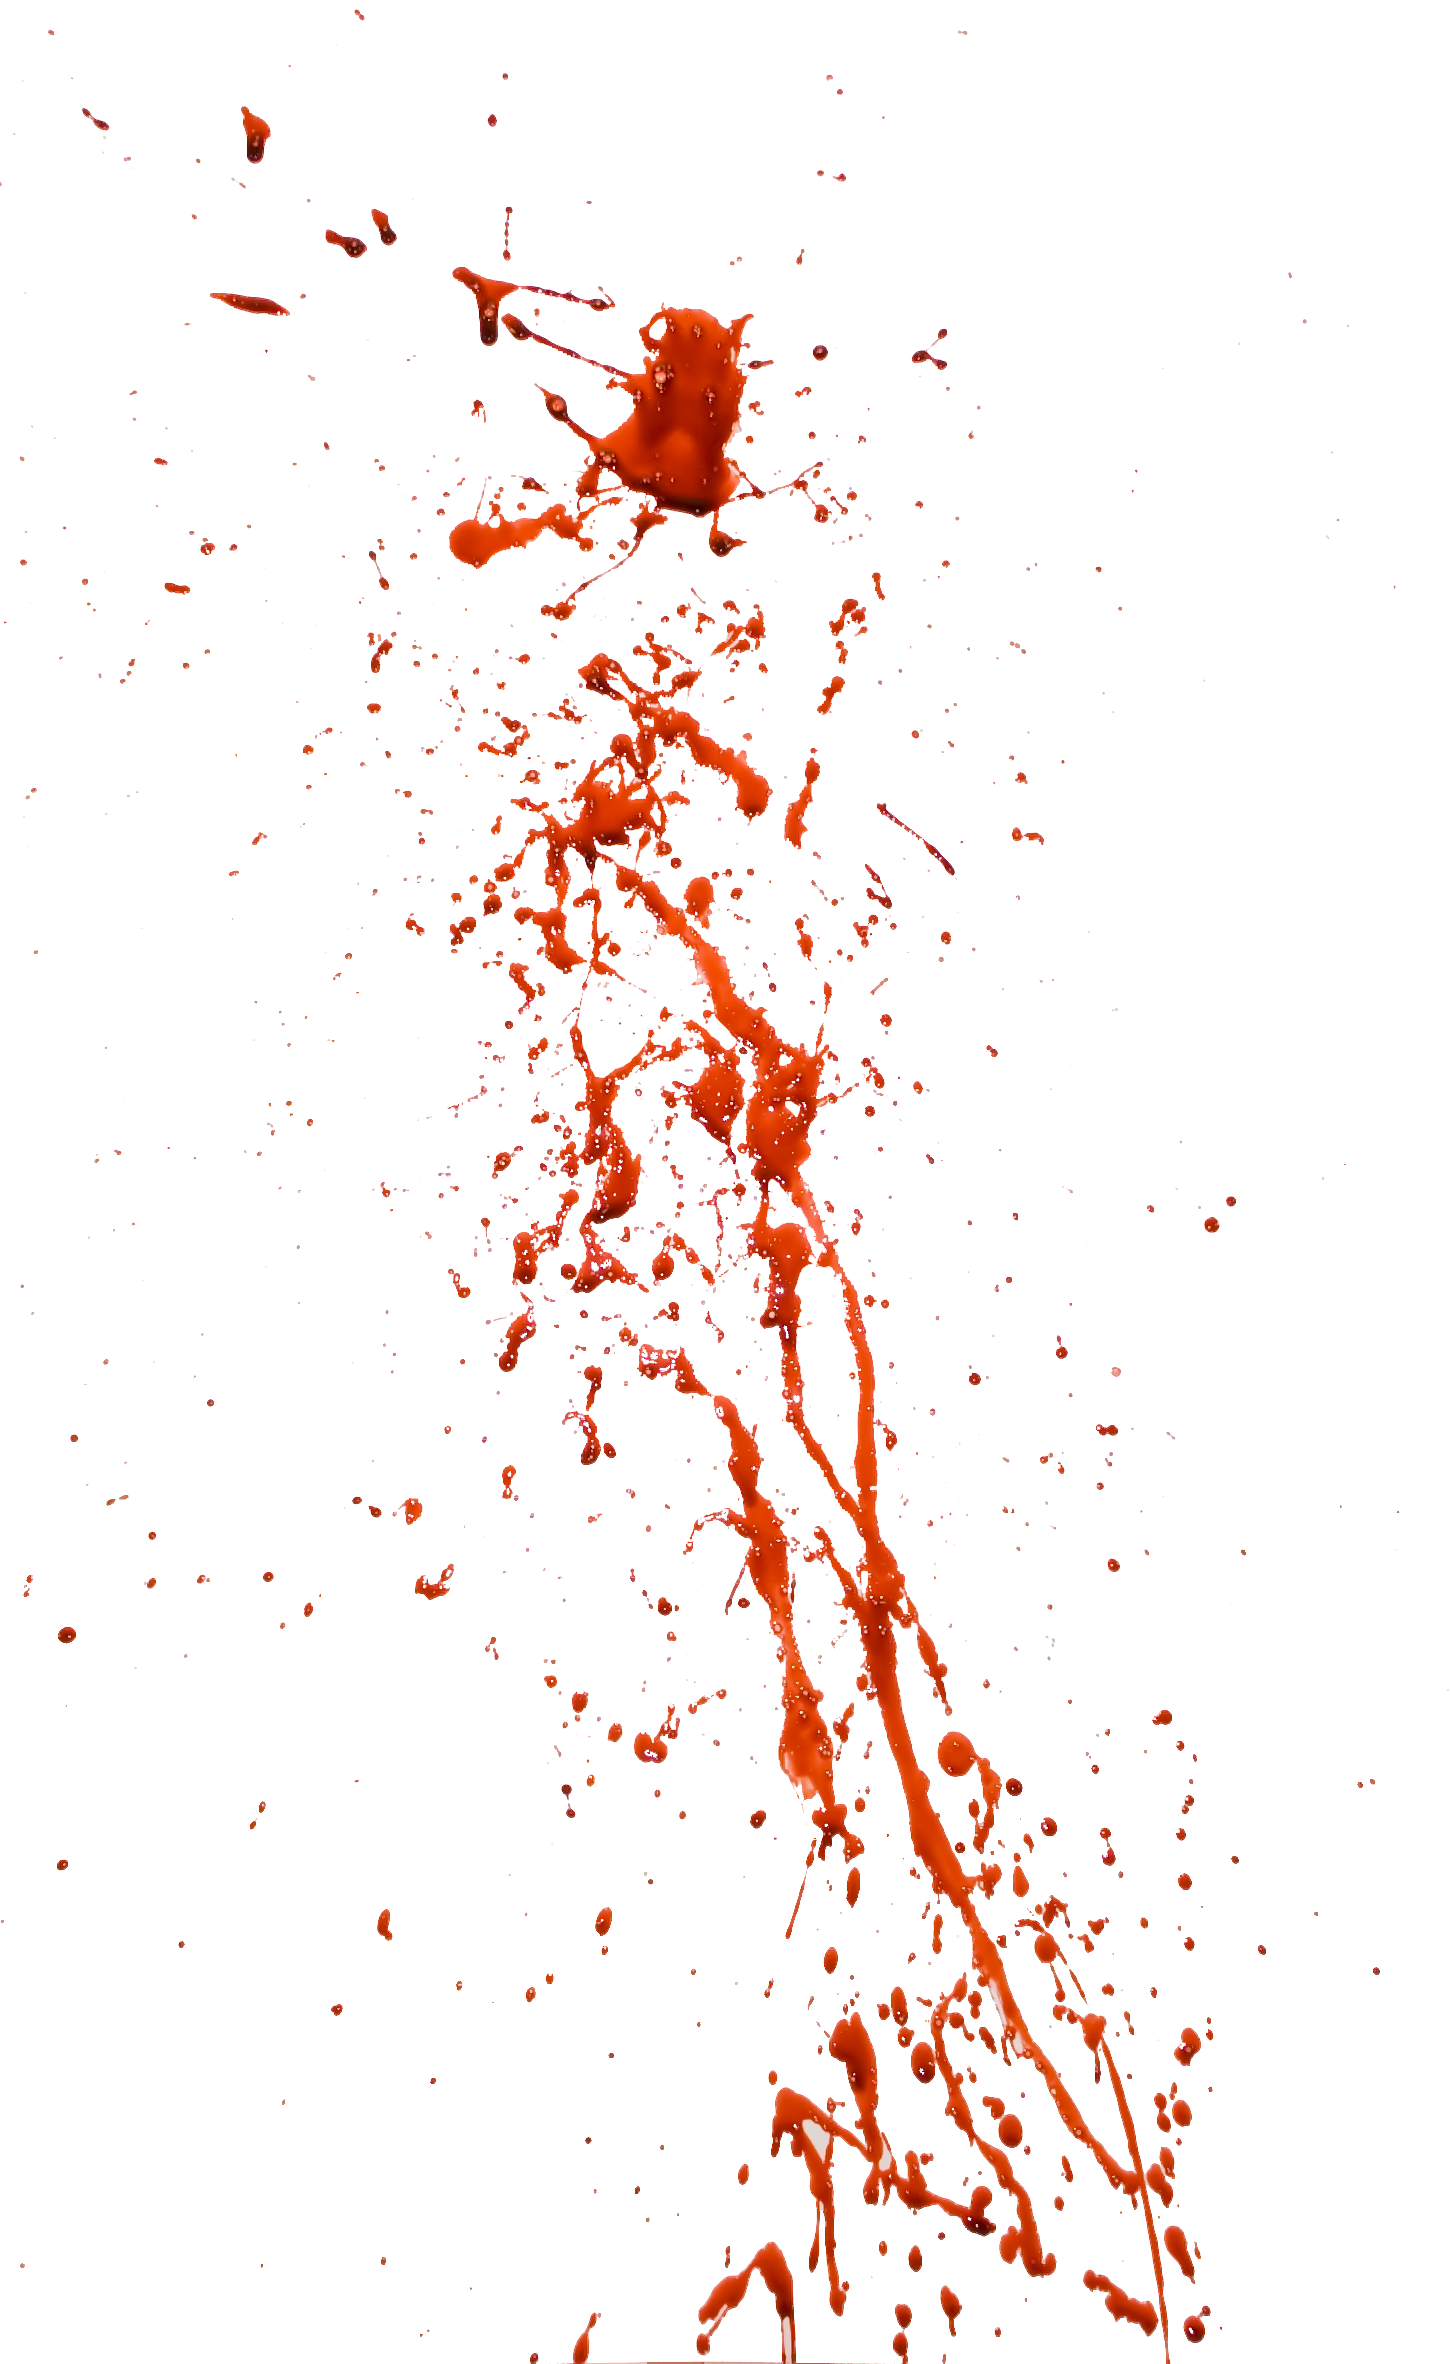 blood png images splashes #8345